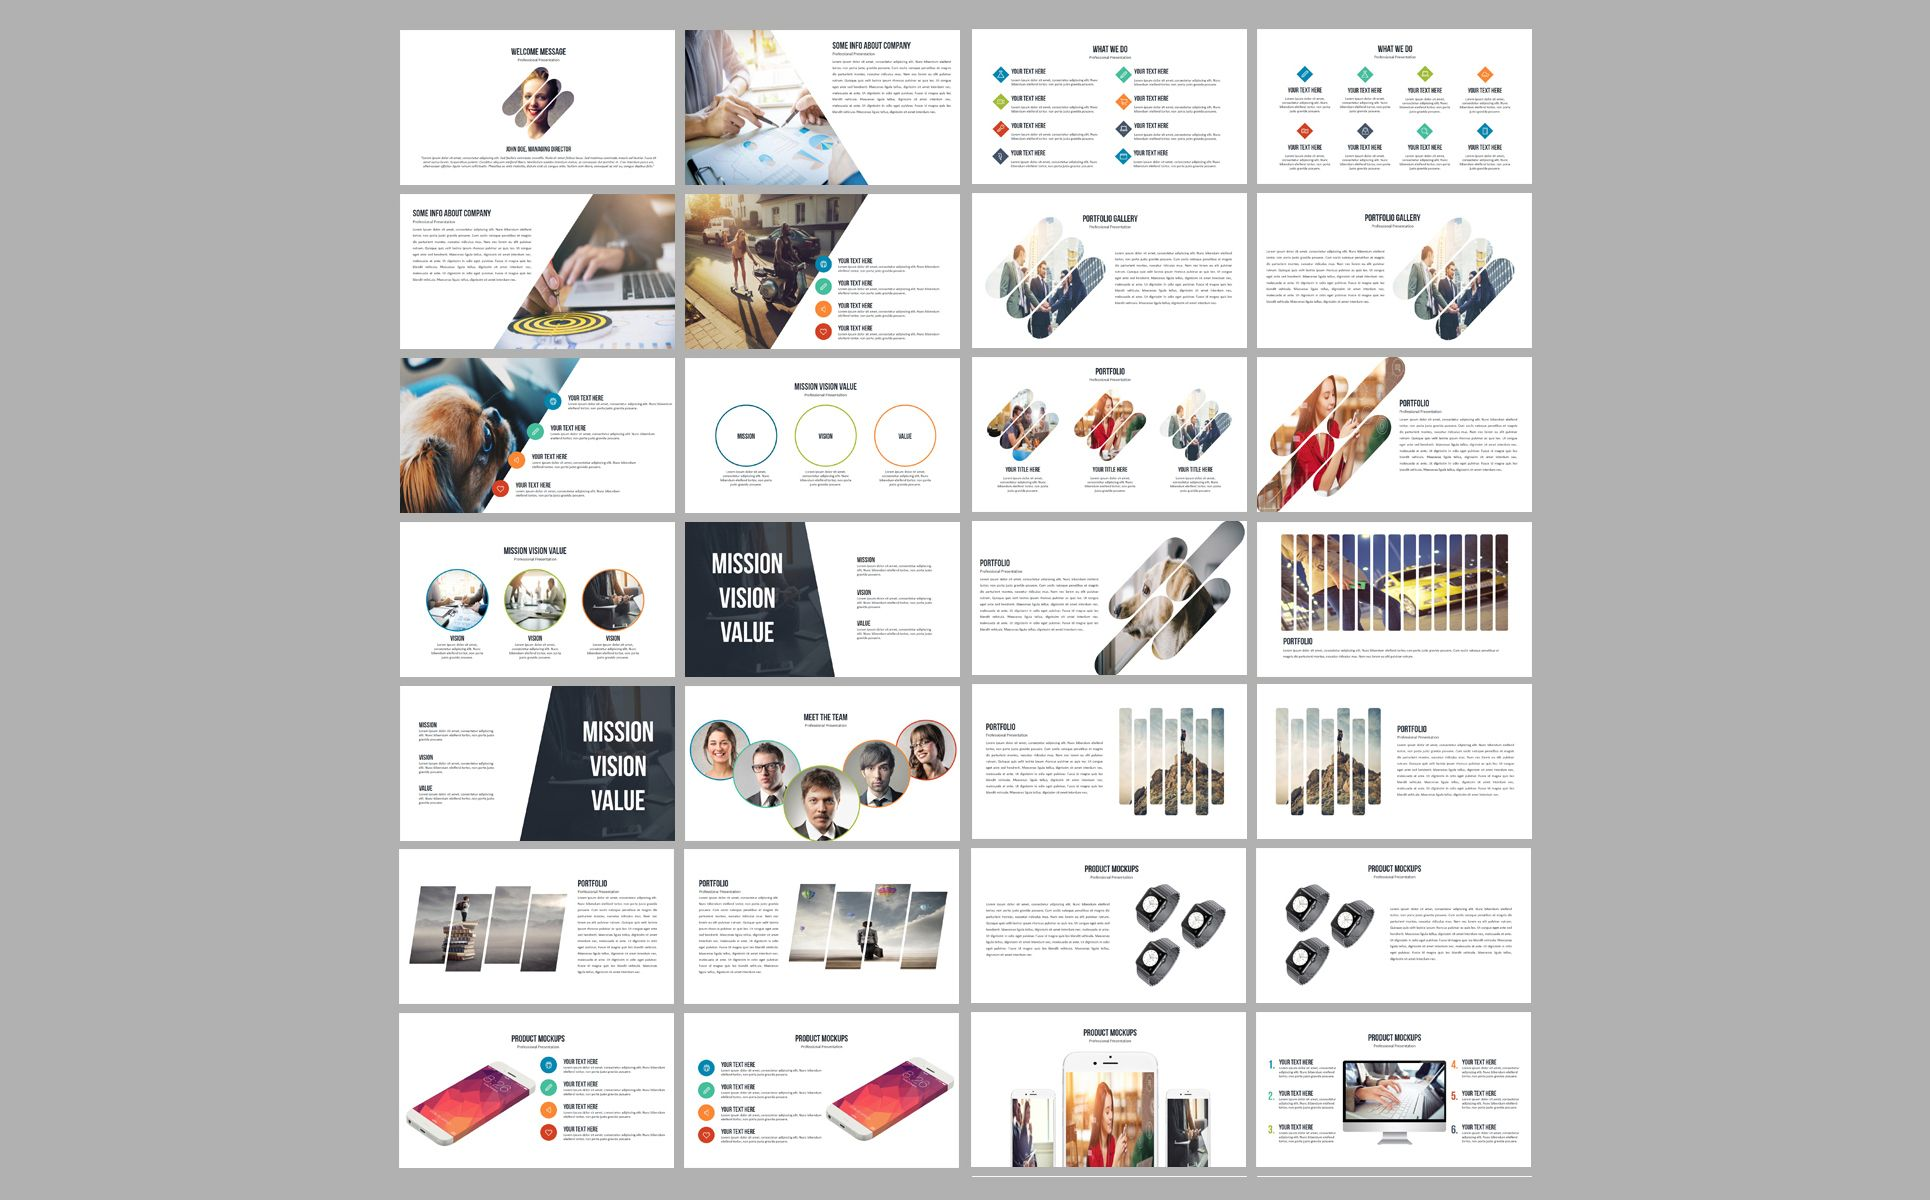 Business Plan 2020 PowerPoint Template 80891 (With images